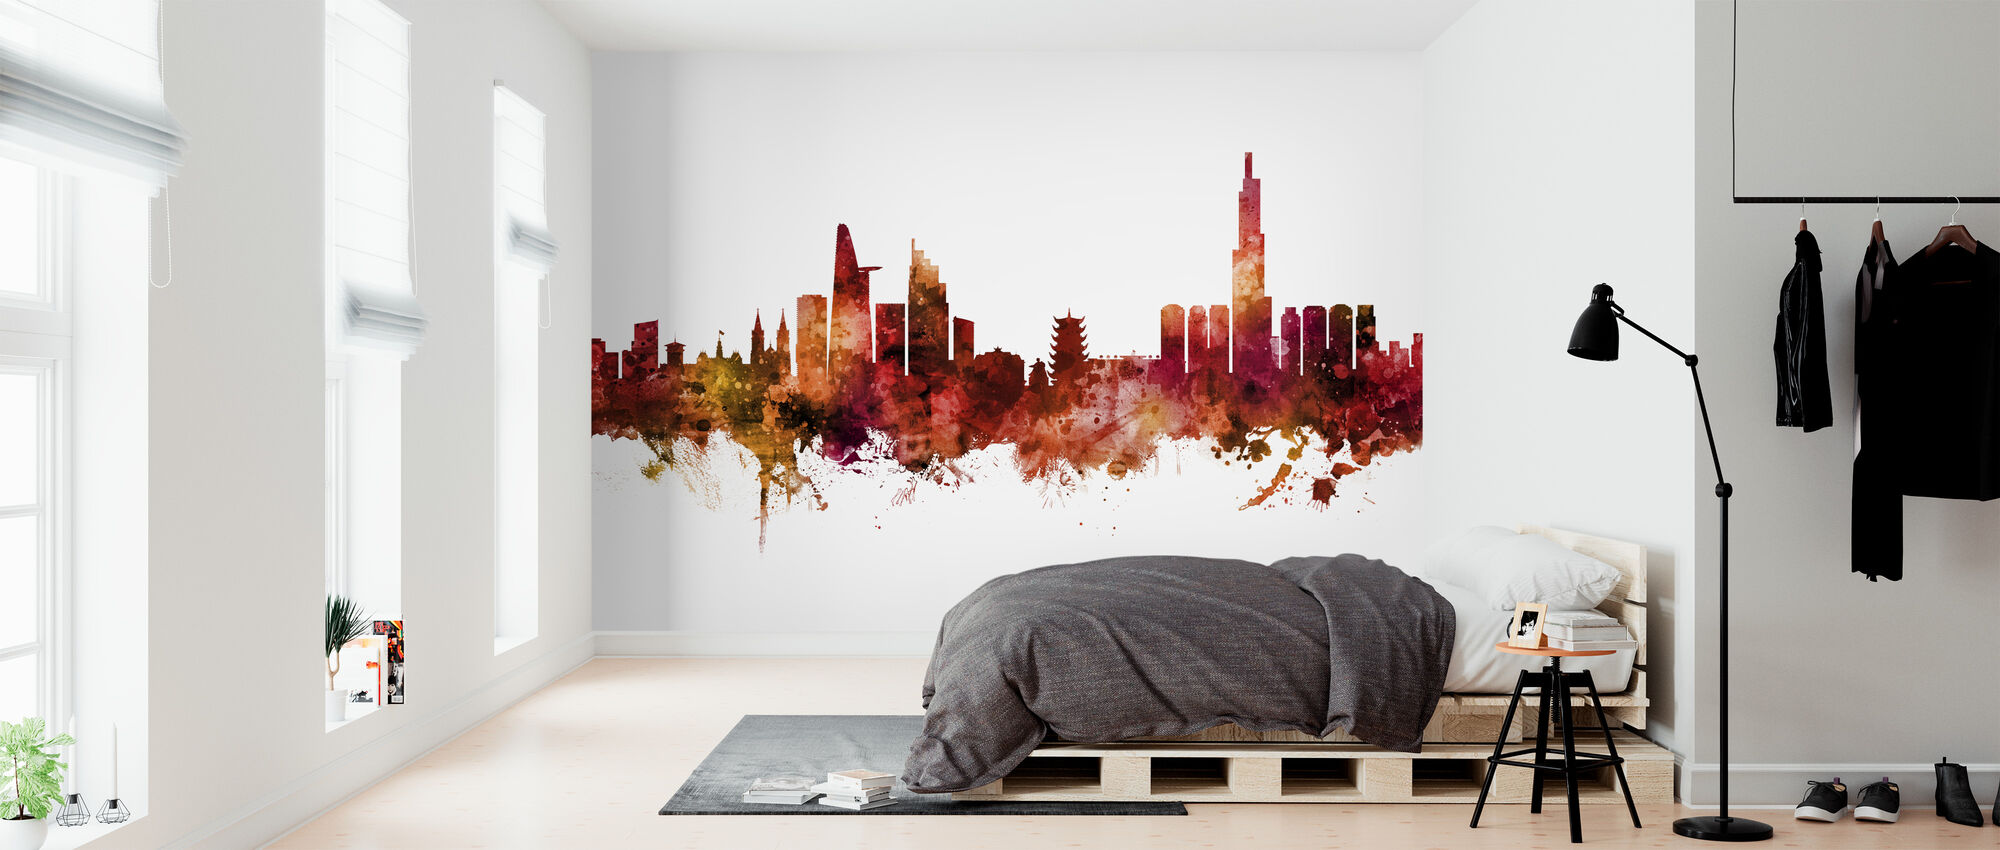 Ho Chi Minh City Vietnam Skyline - Wallpaper - Bedroom